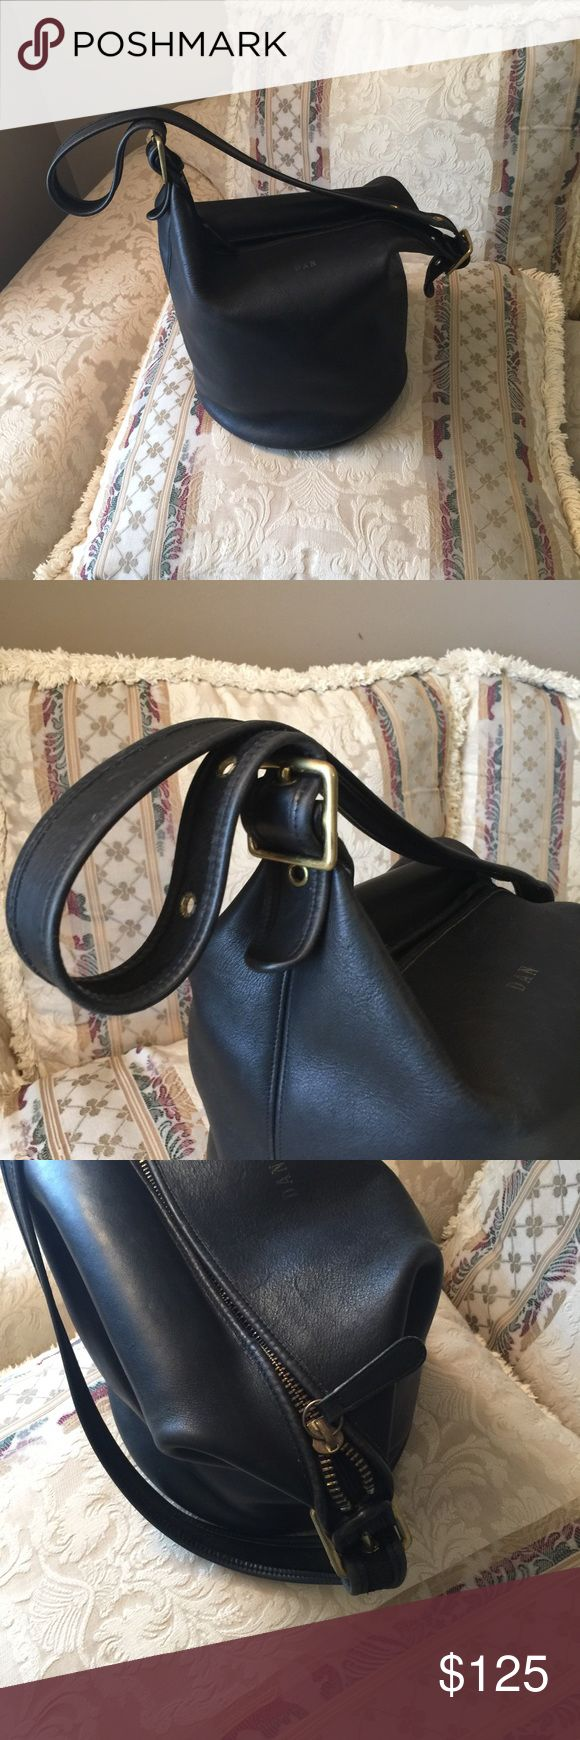 Coach Duffle bag VINTAGE Coach Duffle bag AUTHENTIC Vintage in great condition...clean inside and out, no dust bag or tag, circa 1993😀 gold initials can be buffed away! Initials are faded. Coach Bags Shoulder Bags